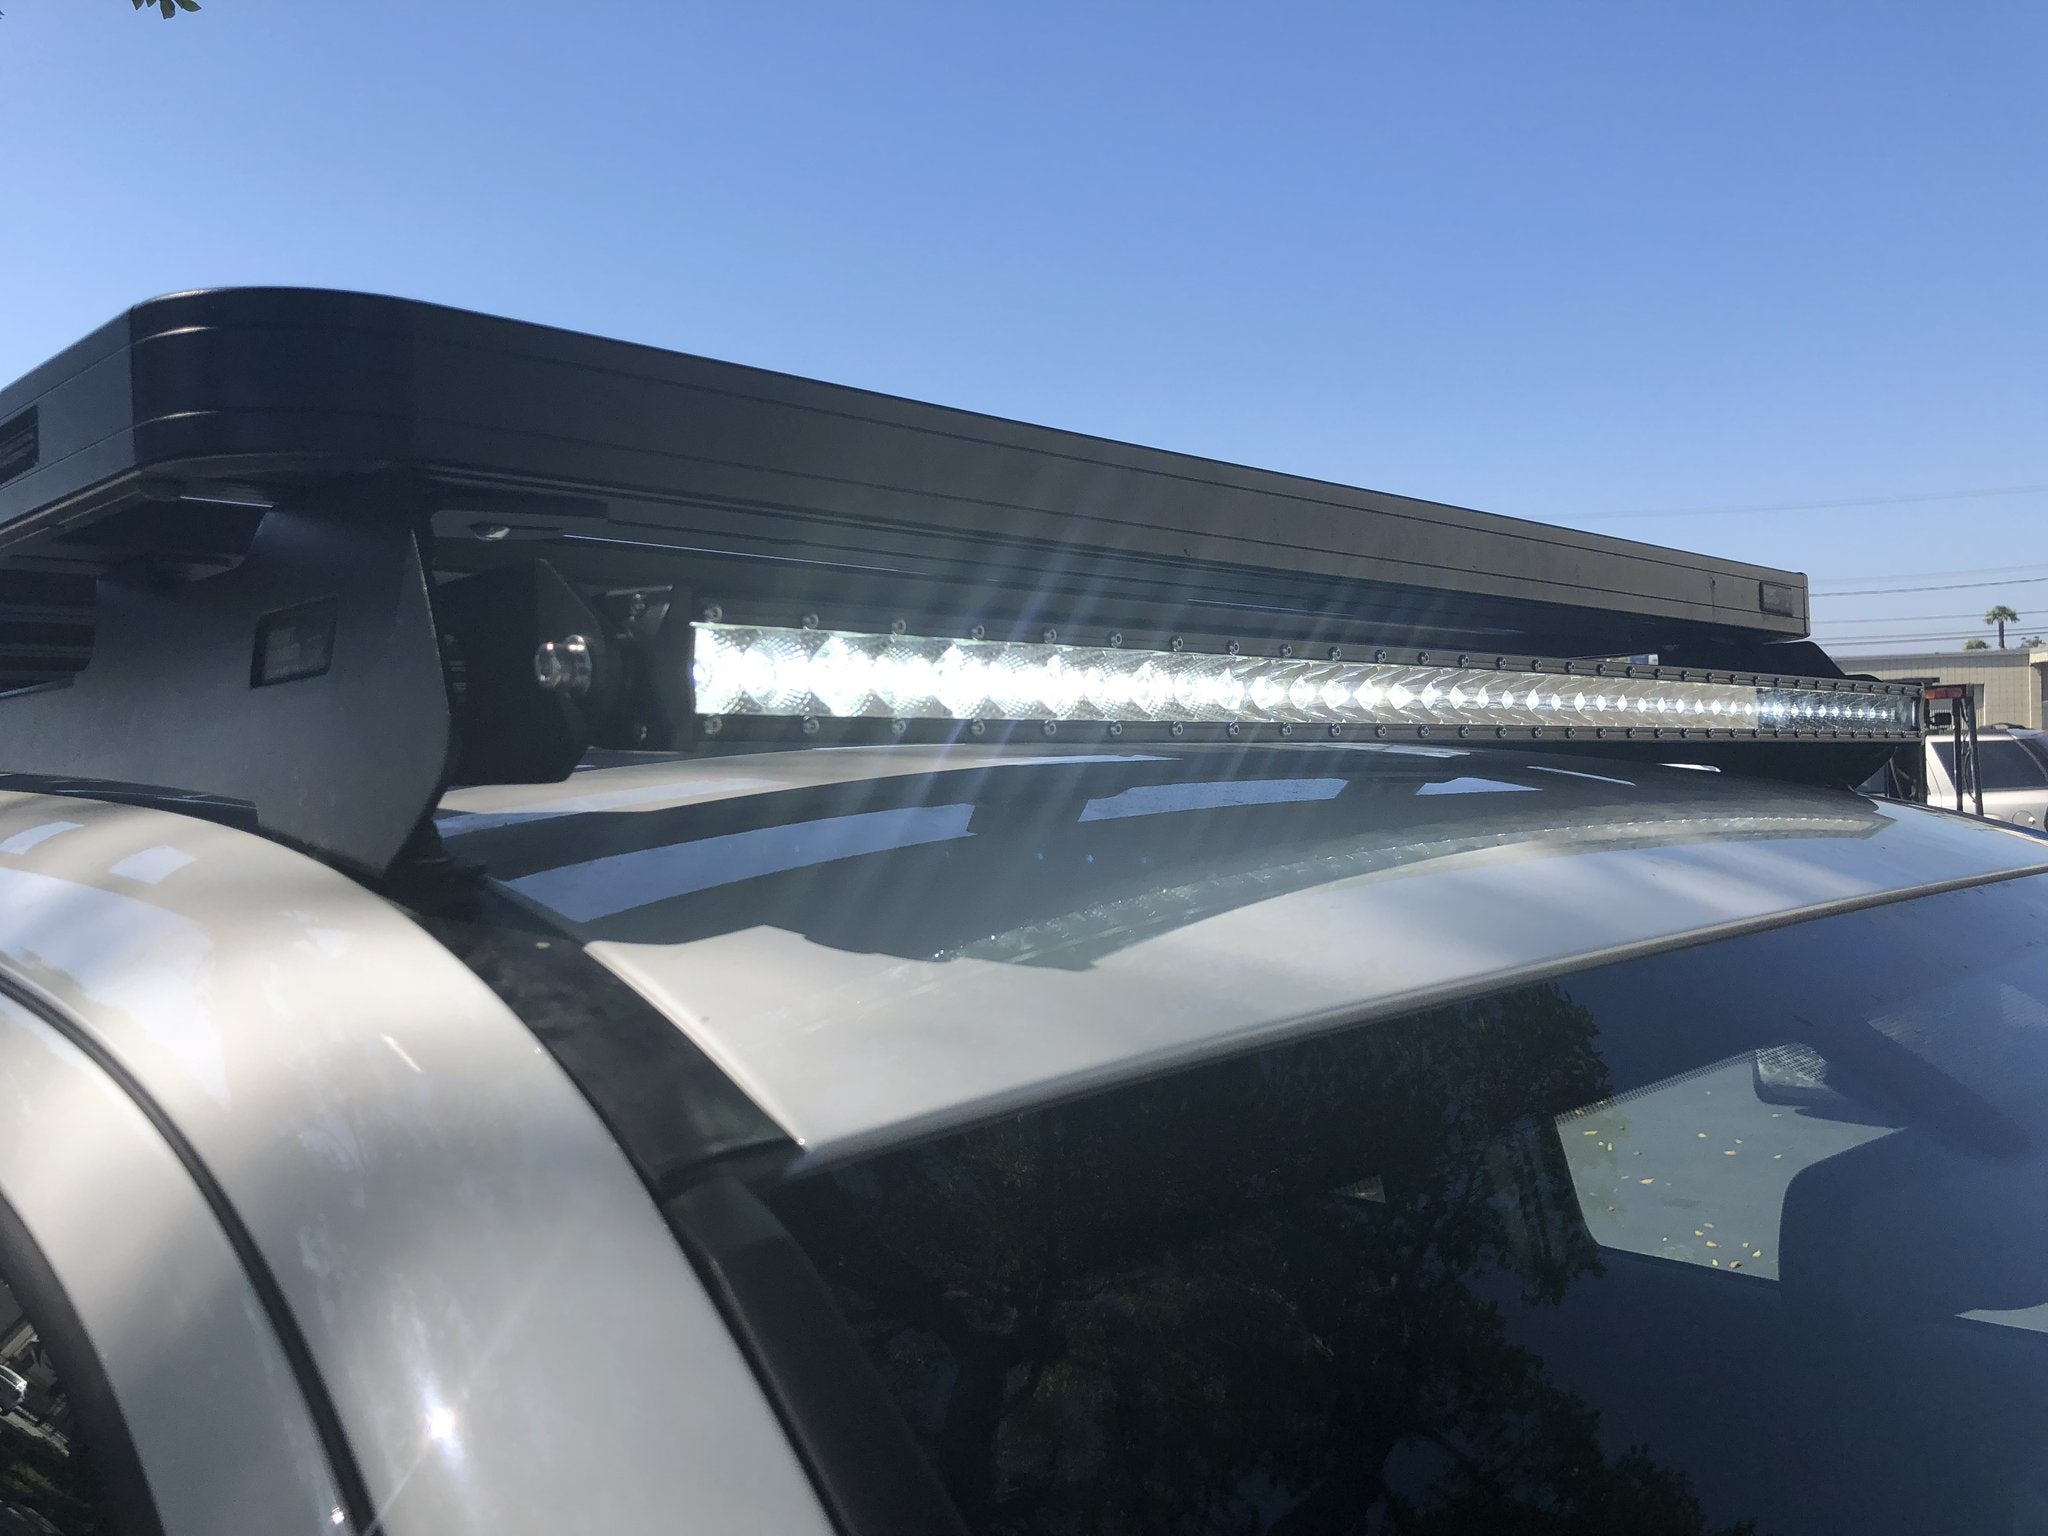 FRONT RUNNER SLIMLINE ROOF RACK LED BAR COMBO - Toyota Tacoma - 4x4 Runners